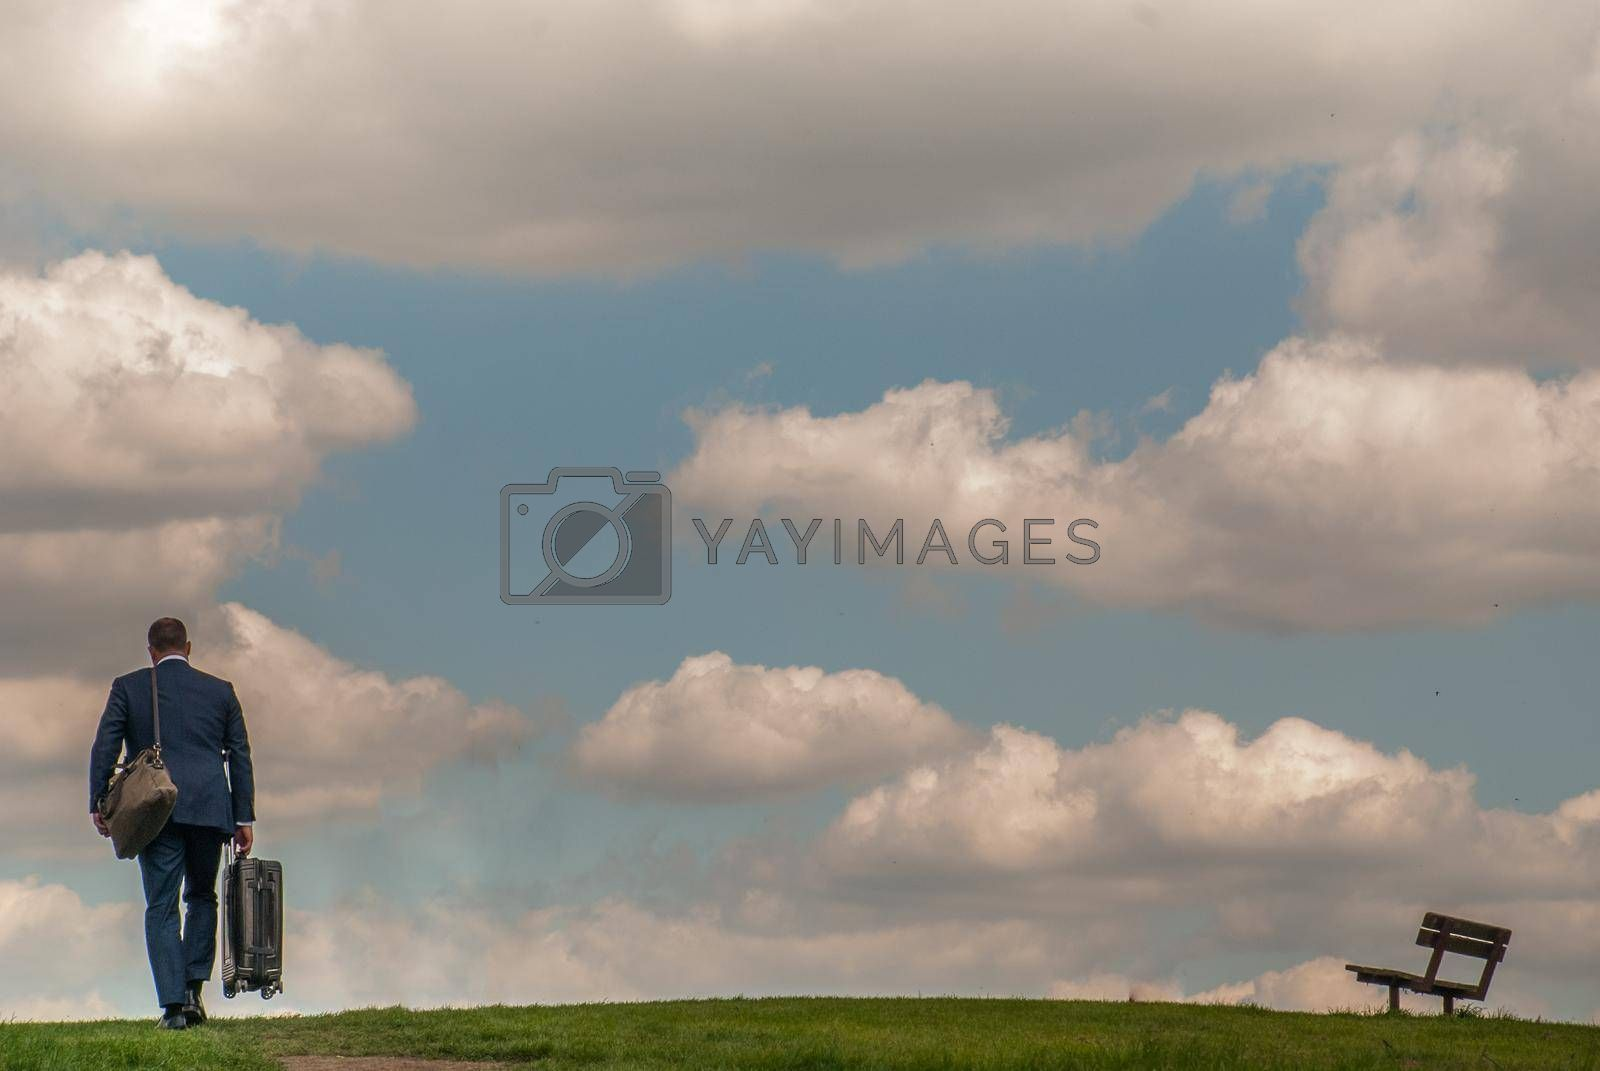 London - 21 May 2019 - Businessmen walking through the hills of Hampstead Heath with a beautiful sky backdrop.